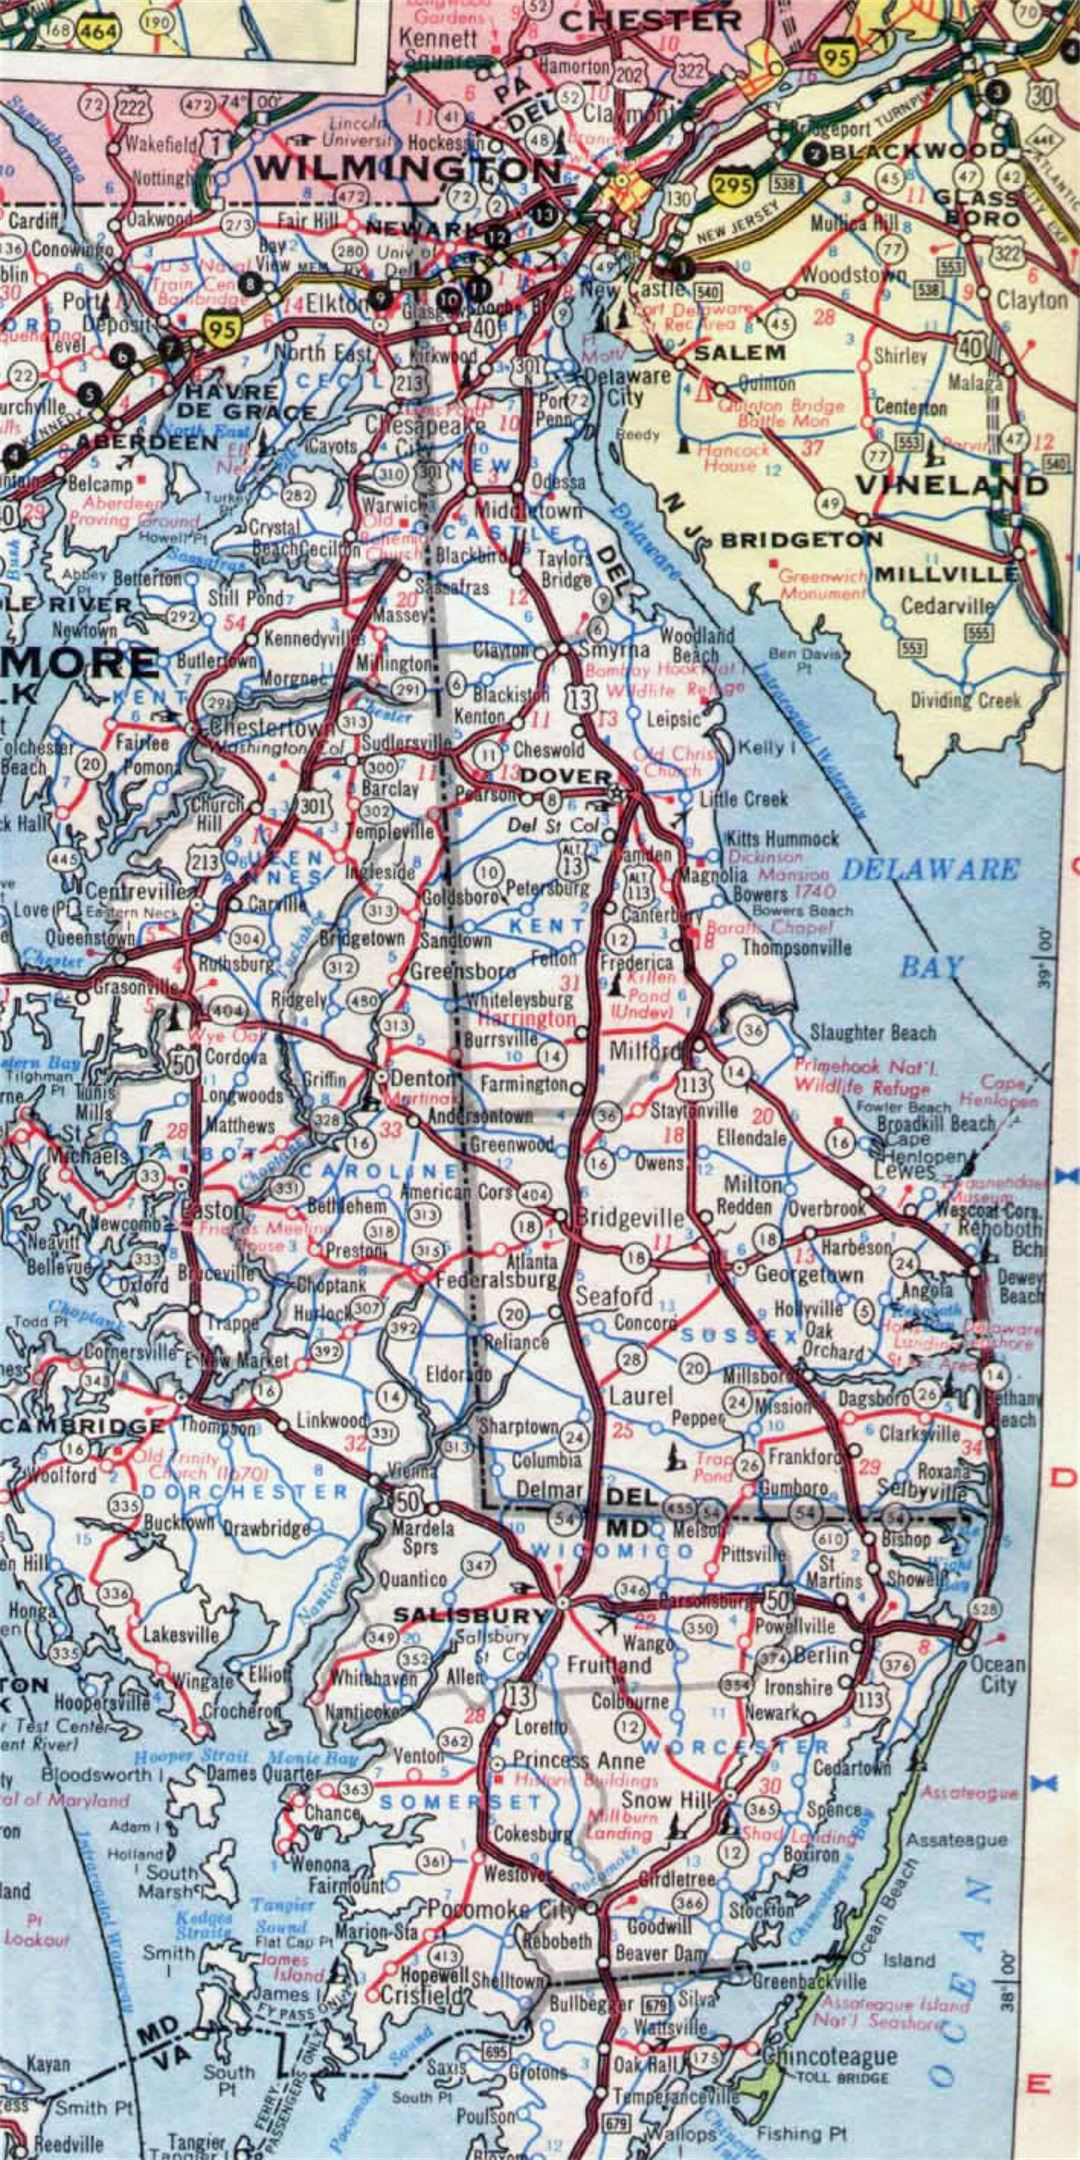 Roads and highways map of Delaware state - 1968